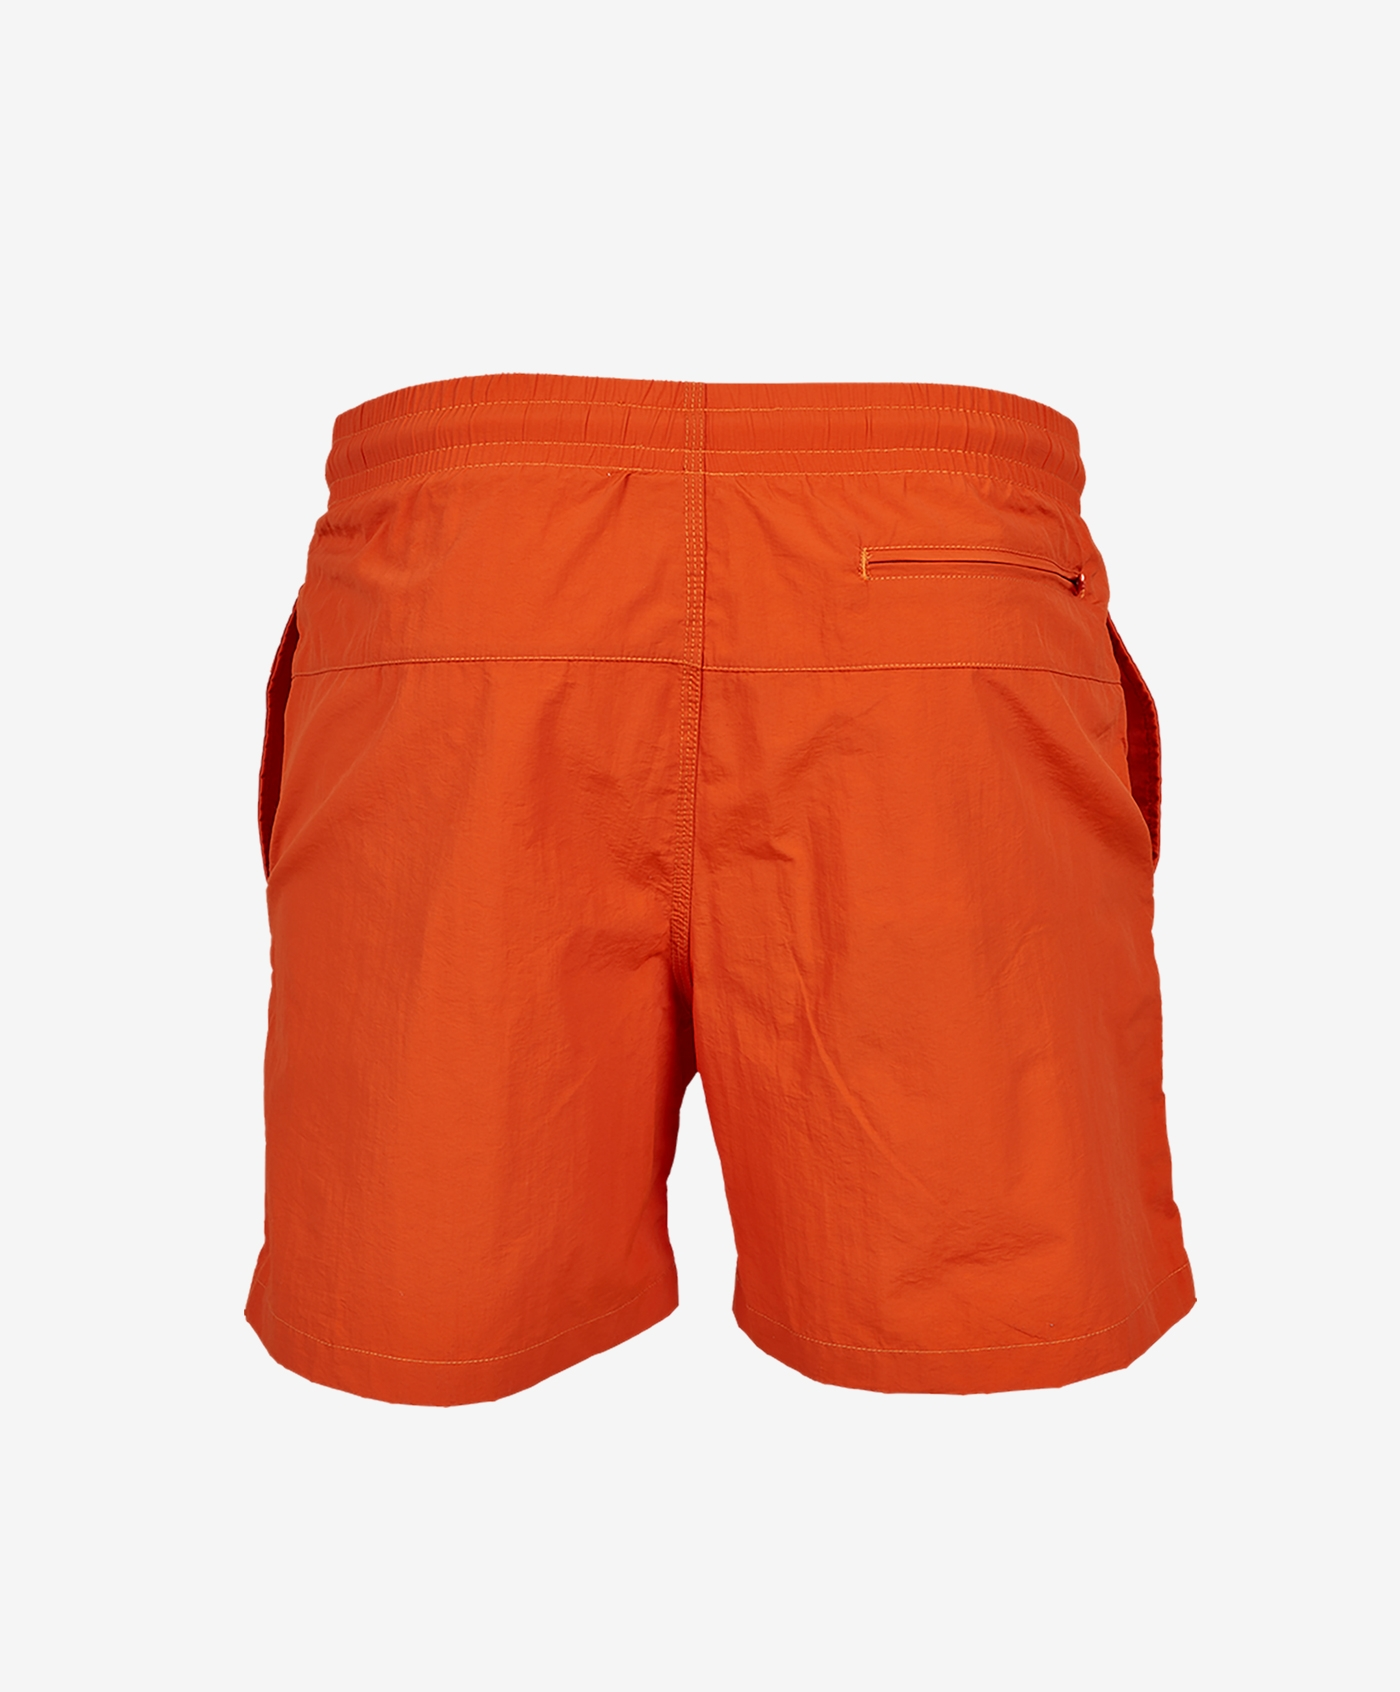 funky-hype-shorts-orange-back